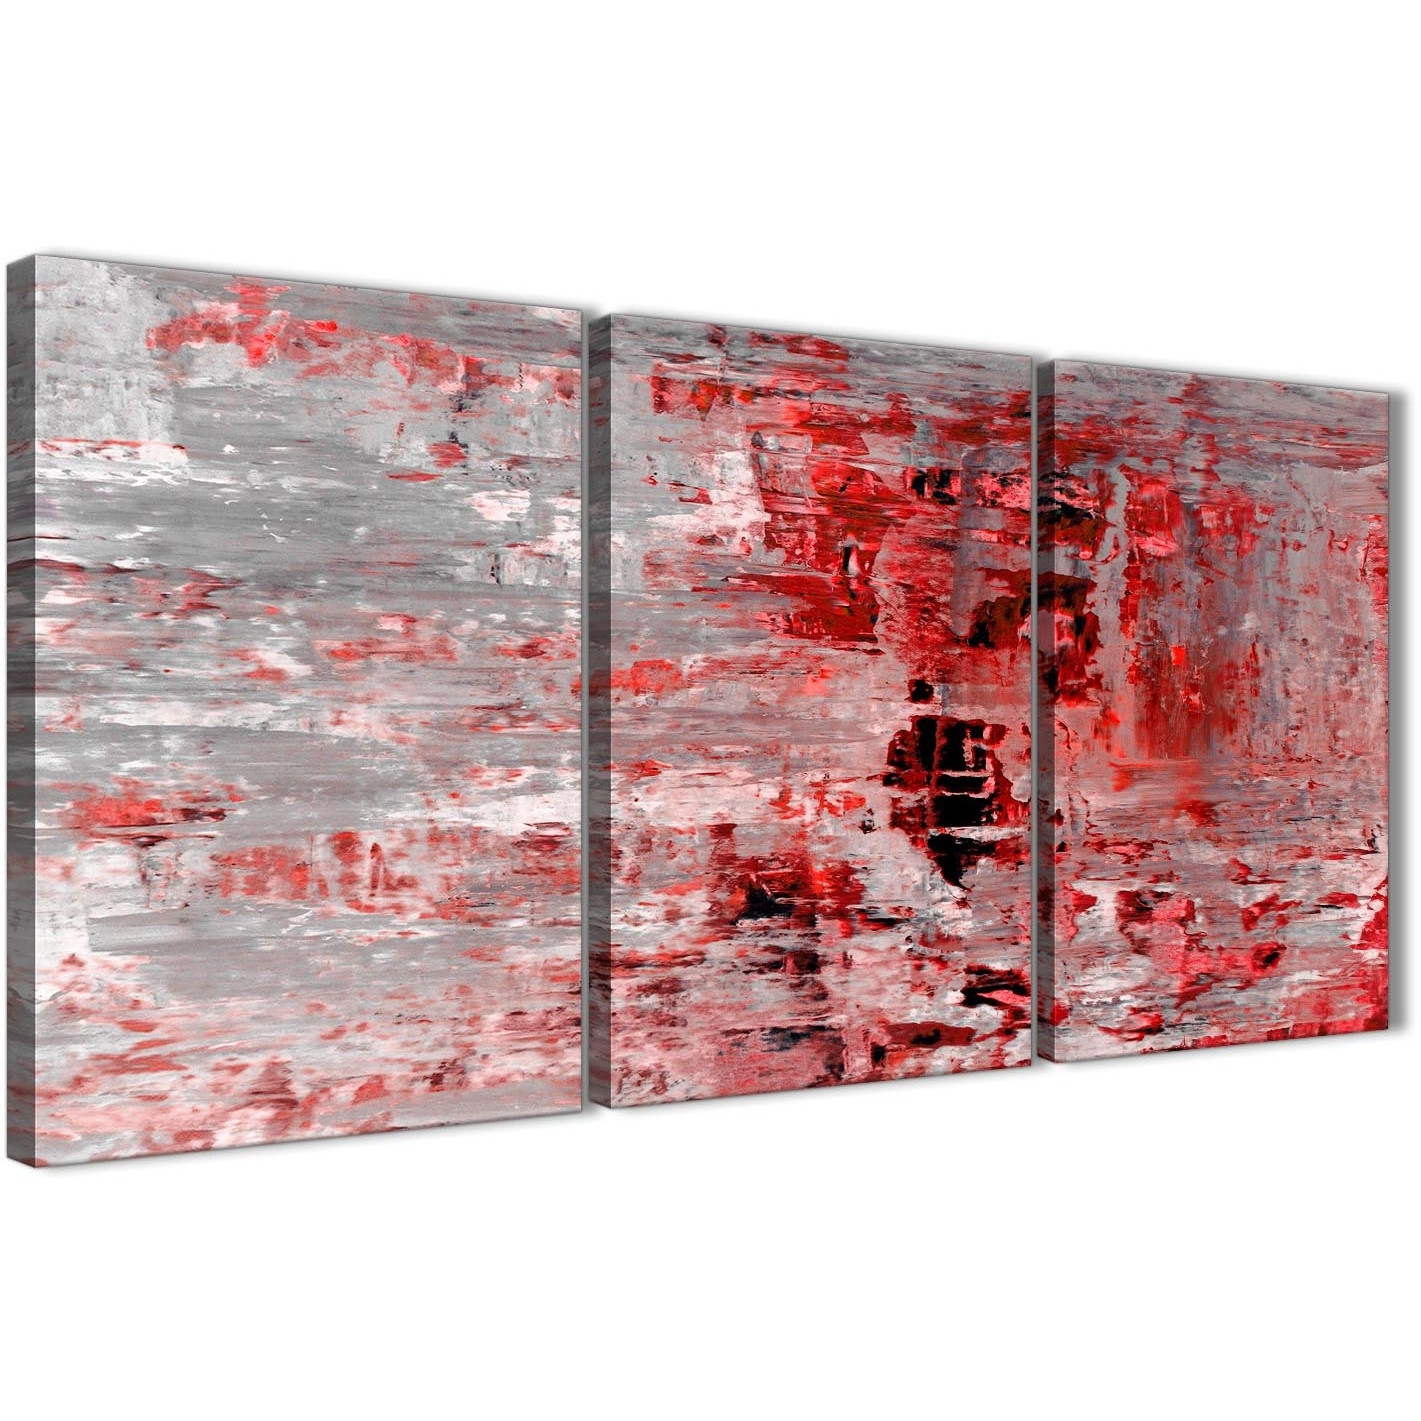 3 Piece Red Grey Painting Living Room Canvas Wall Art Decor For Most Recent Red Wall Art (View 2 of 15)